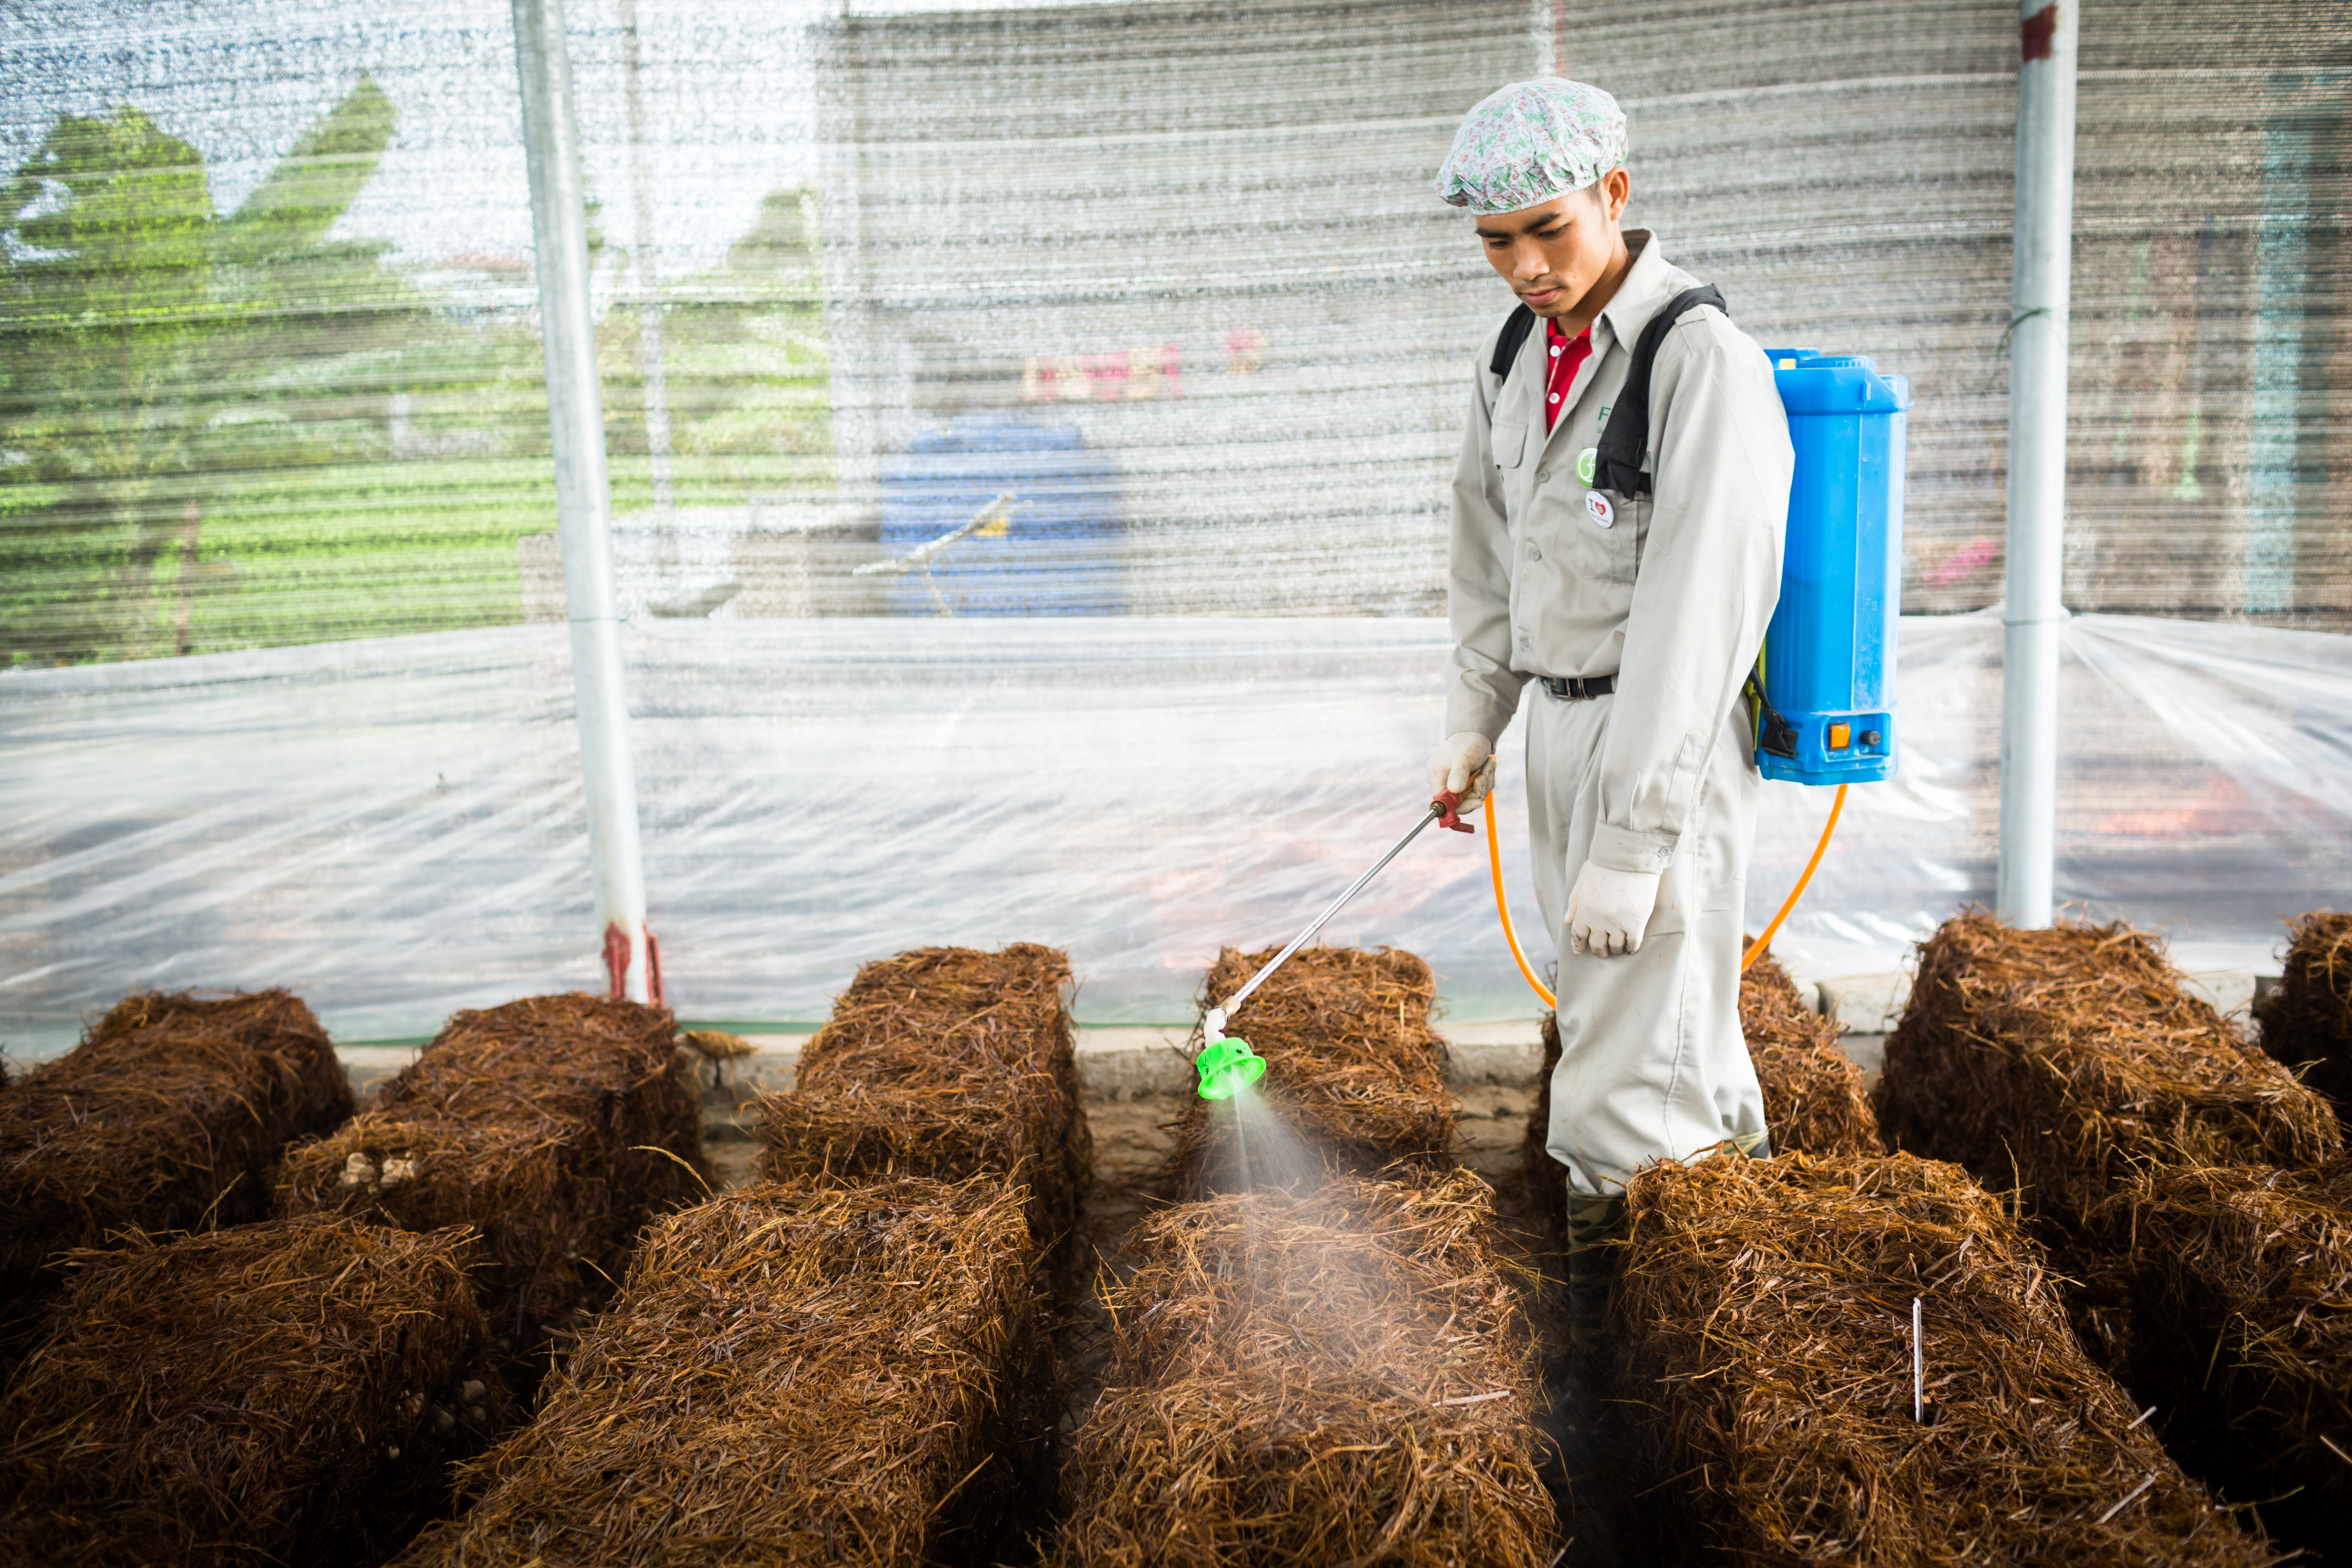 Bales of recycled rice straw are prepared for cultivating mushrooms. Photo: Fargreen